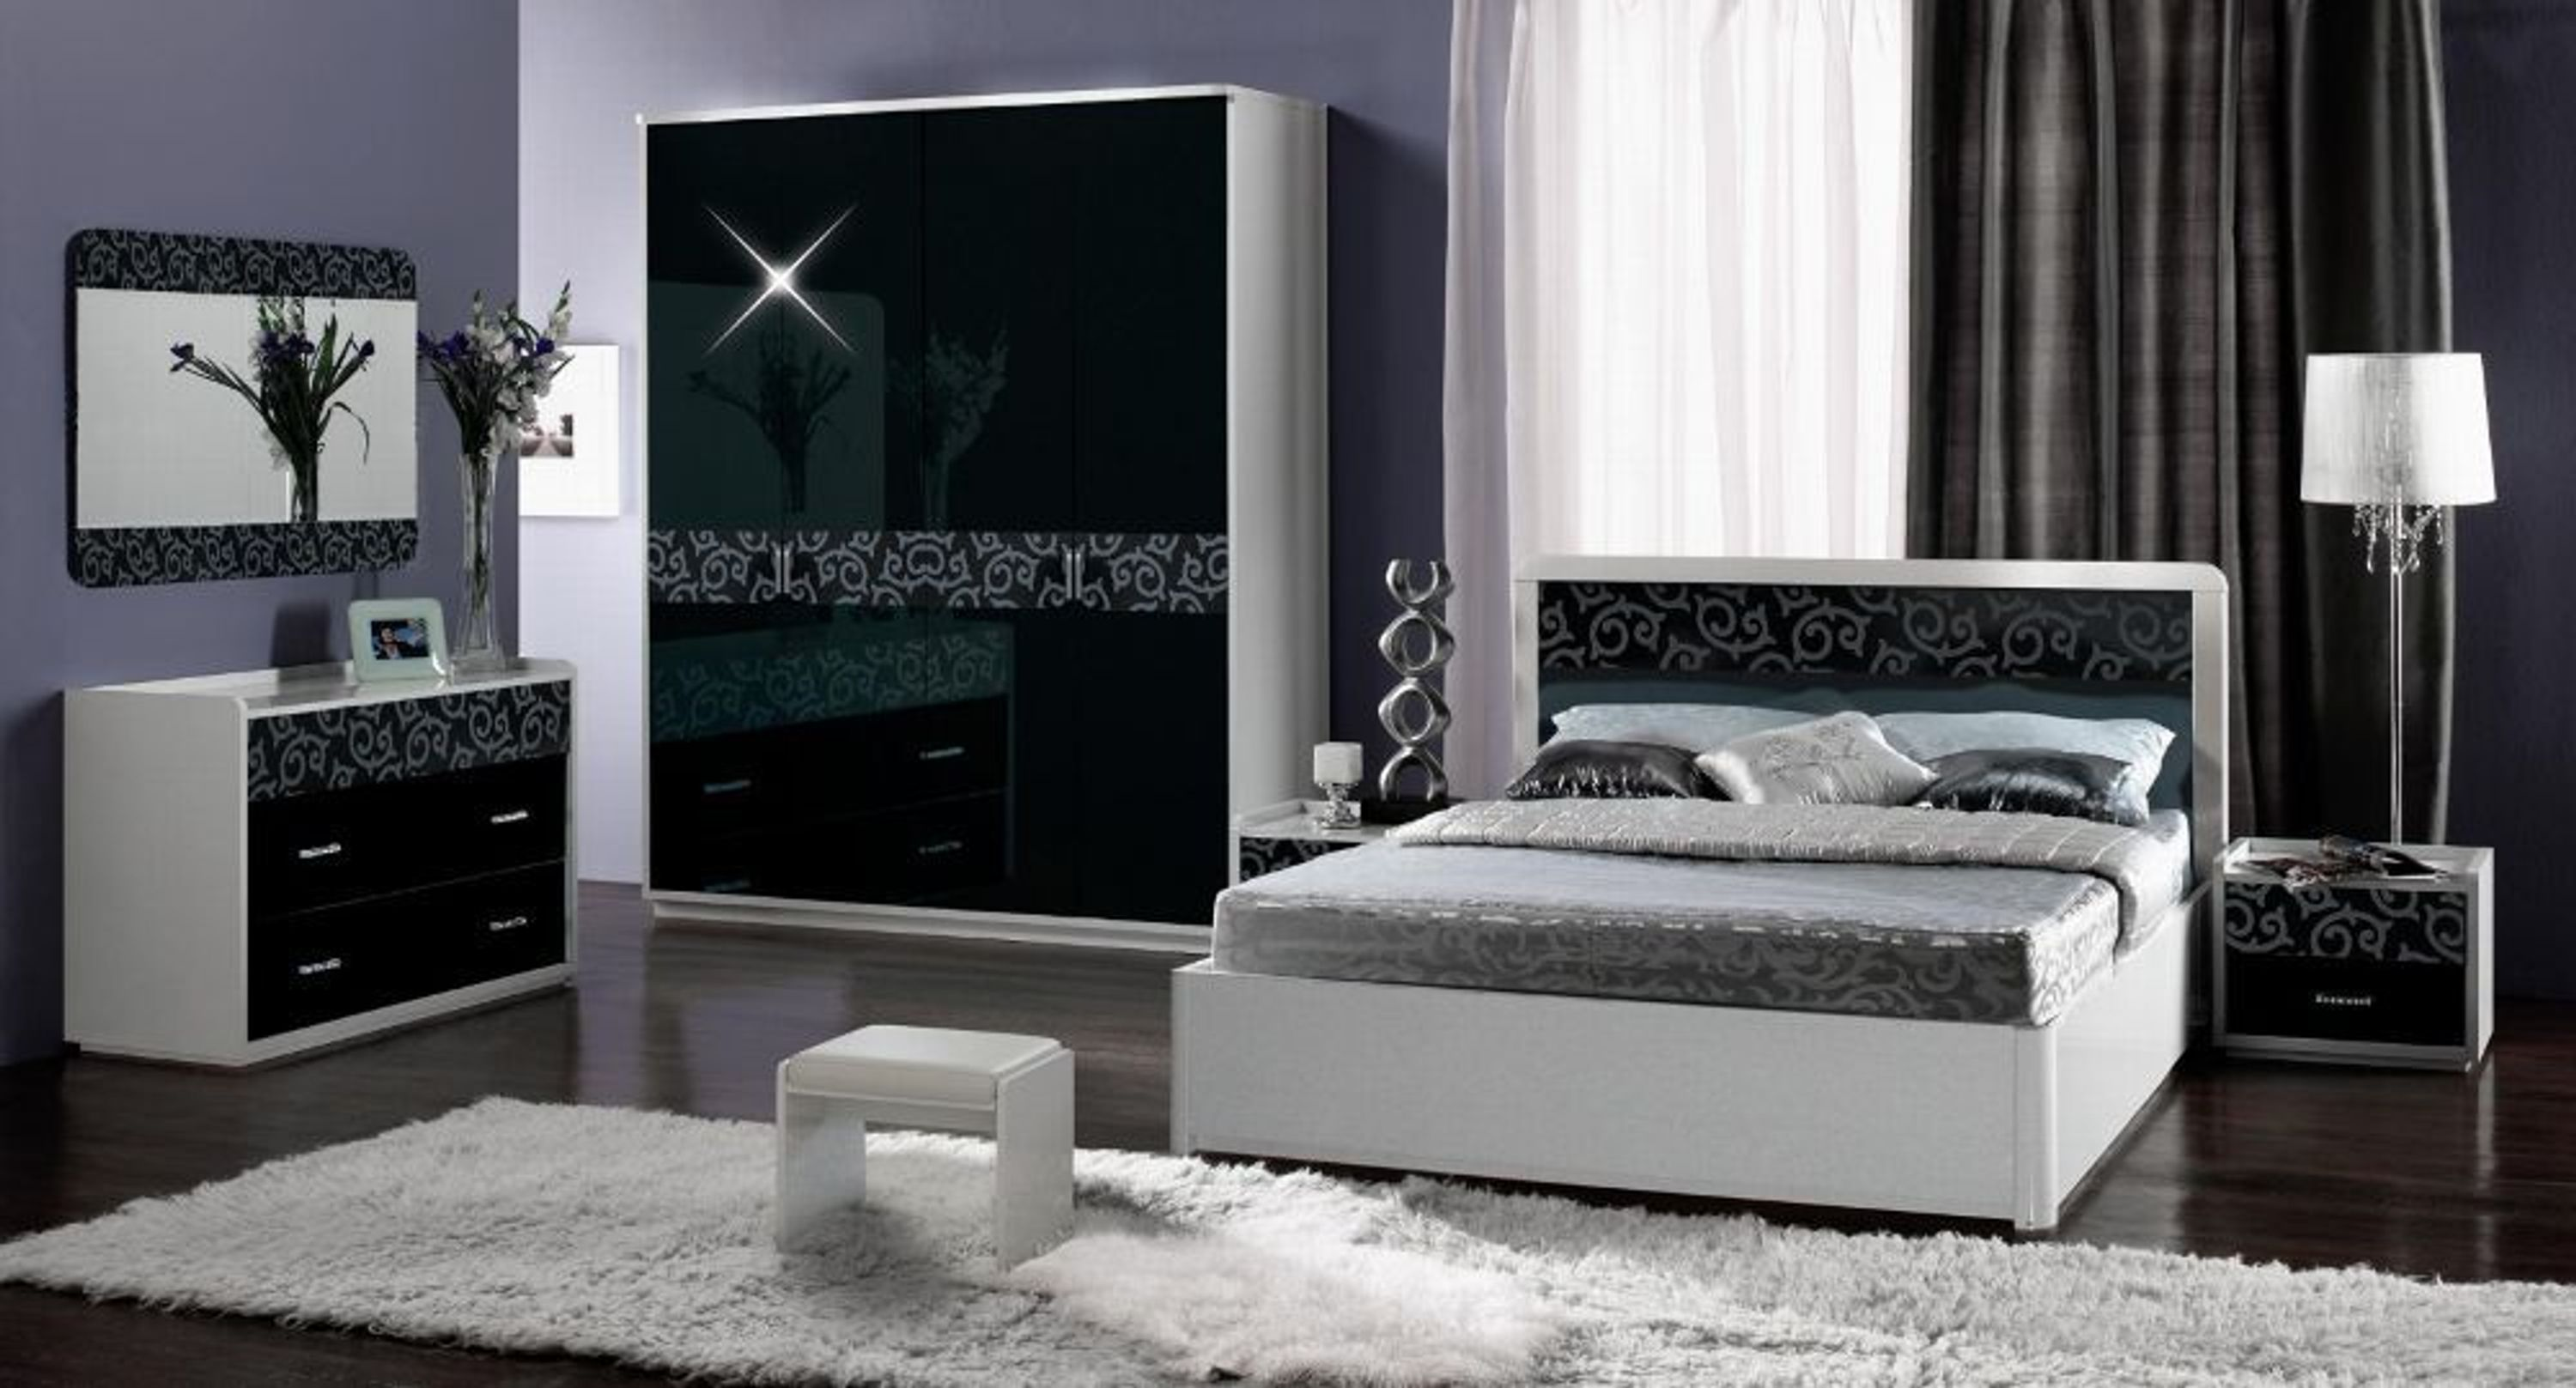 kommode frederike in weiss schwarz glanz kaufen bei. Black Bedroom Furniture Sets. Home Design Ideas